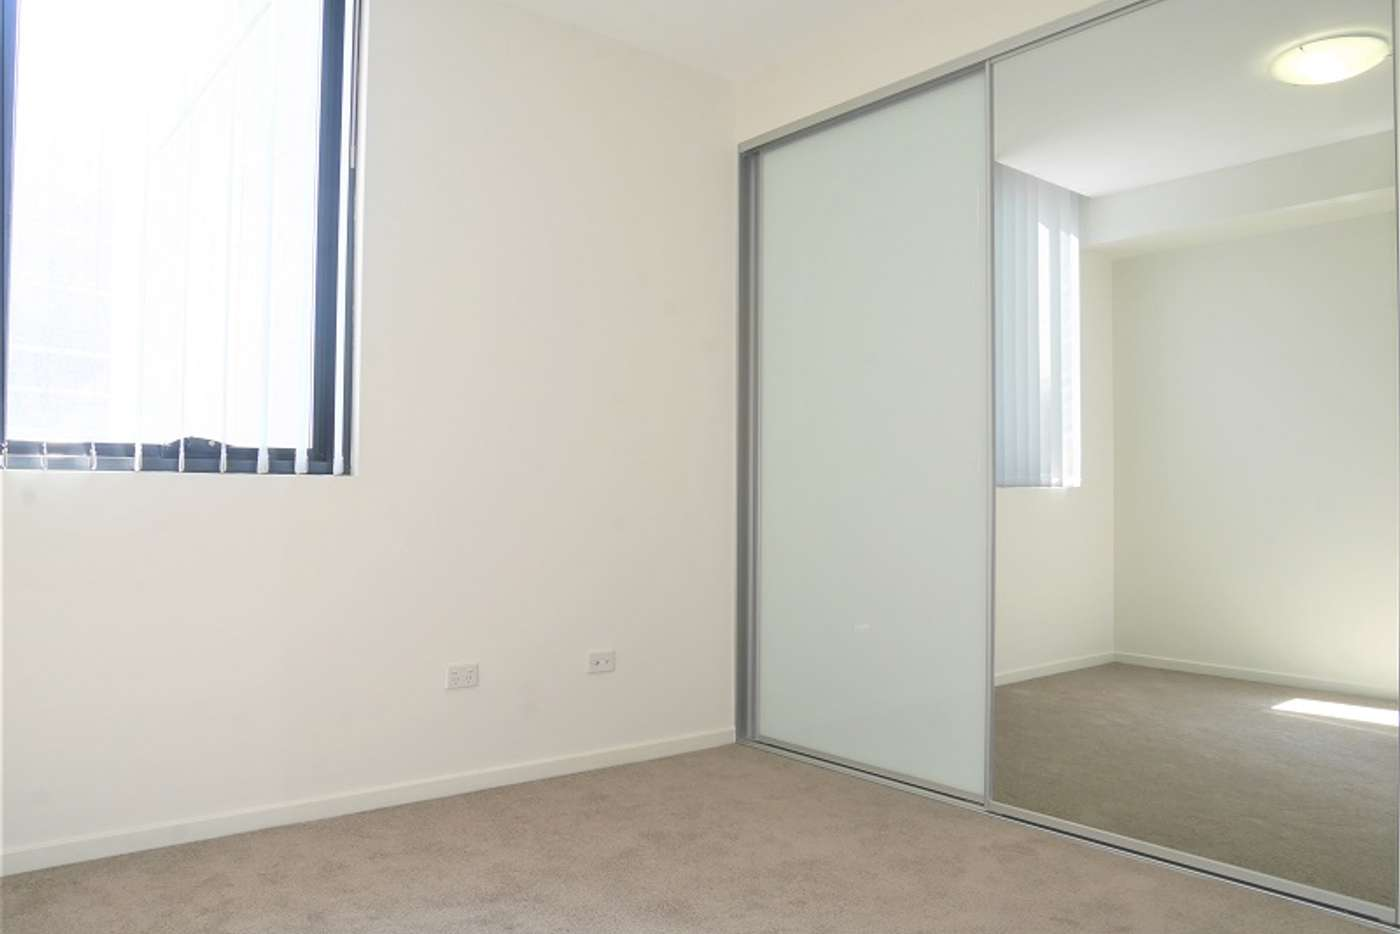 Seventh view of Homely apartment listing, 304/166-170 Terminus Street, Liverpool NSW 2170